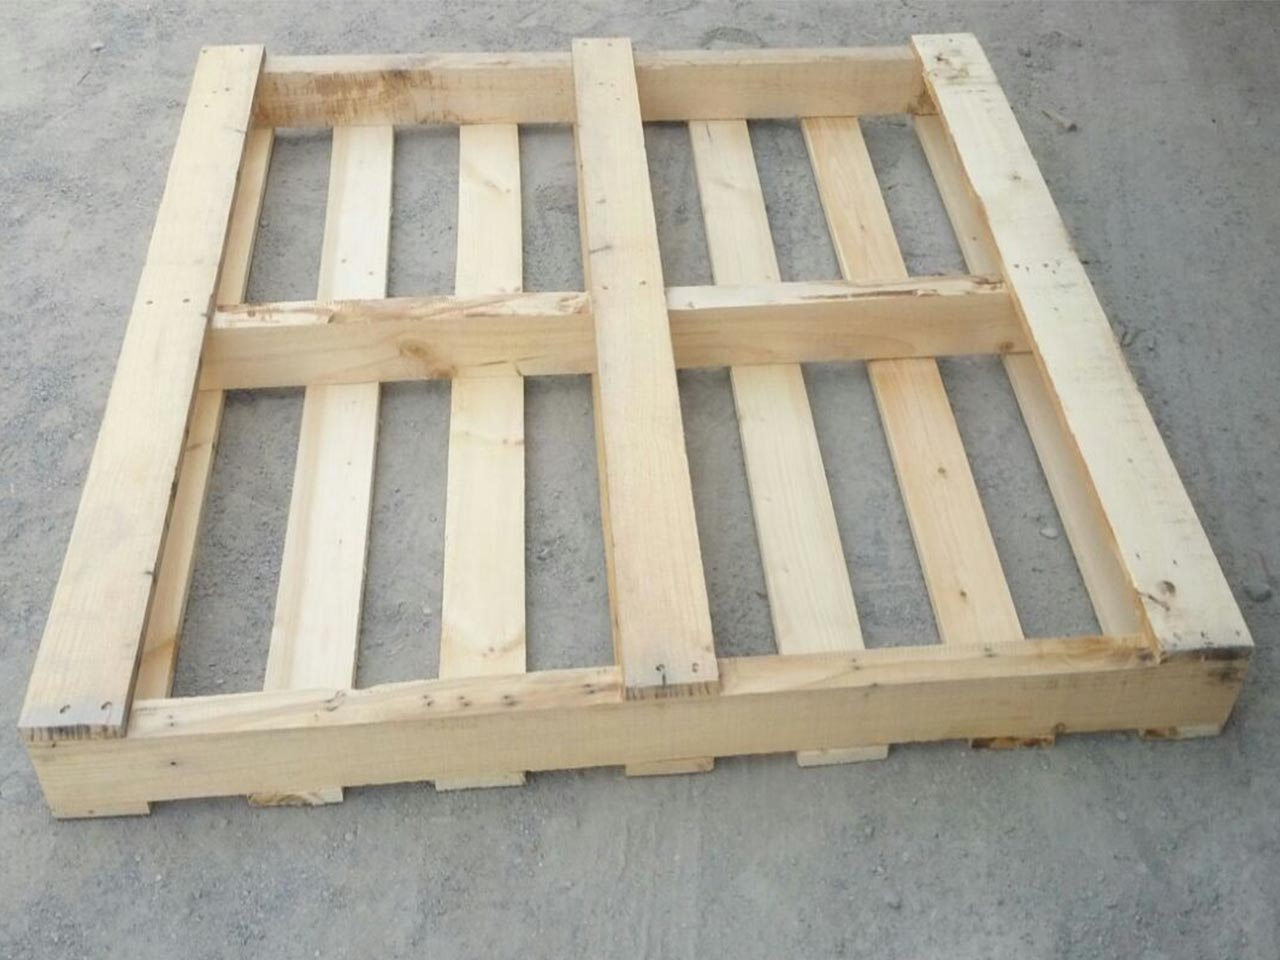 a single wooden pallet image